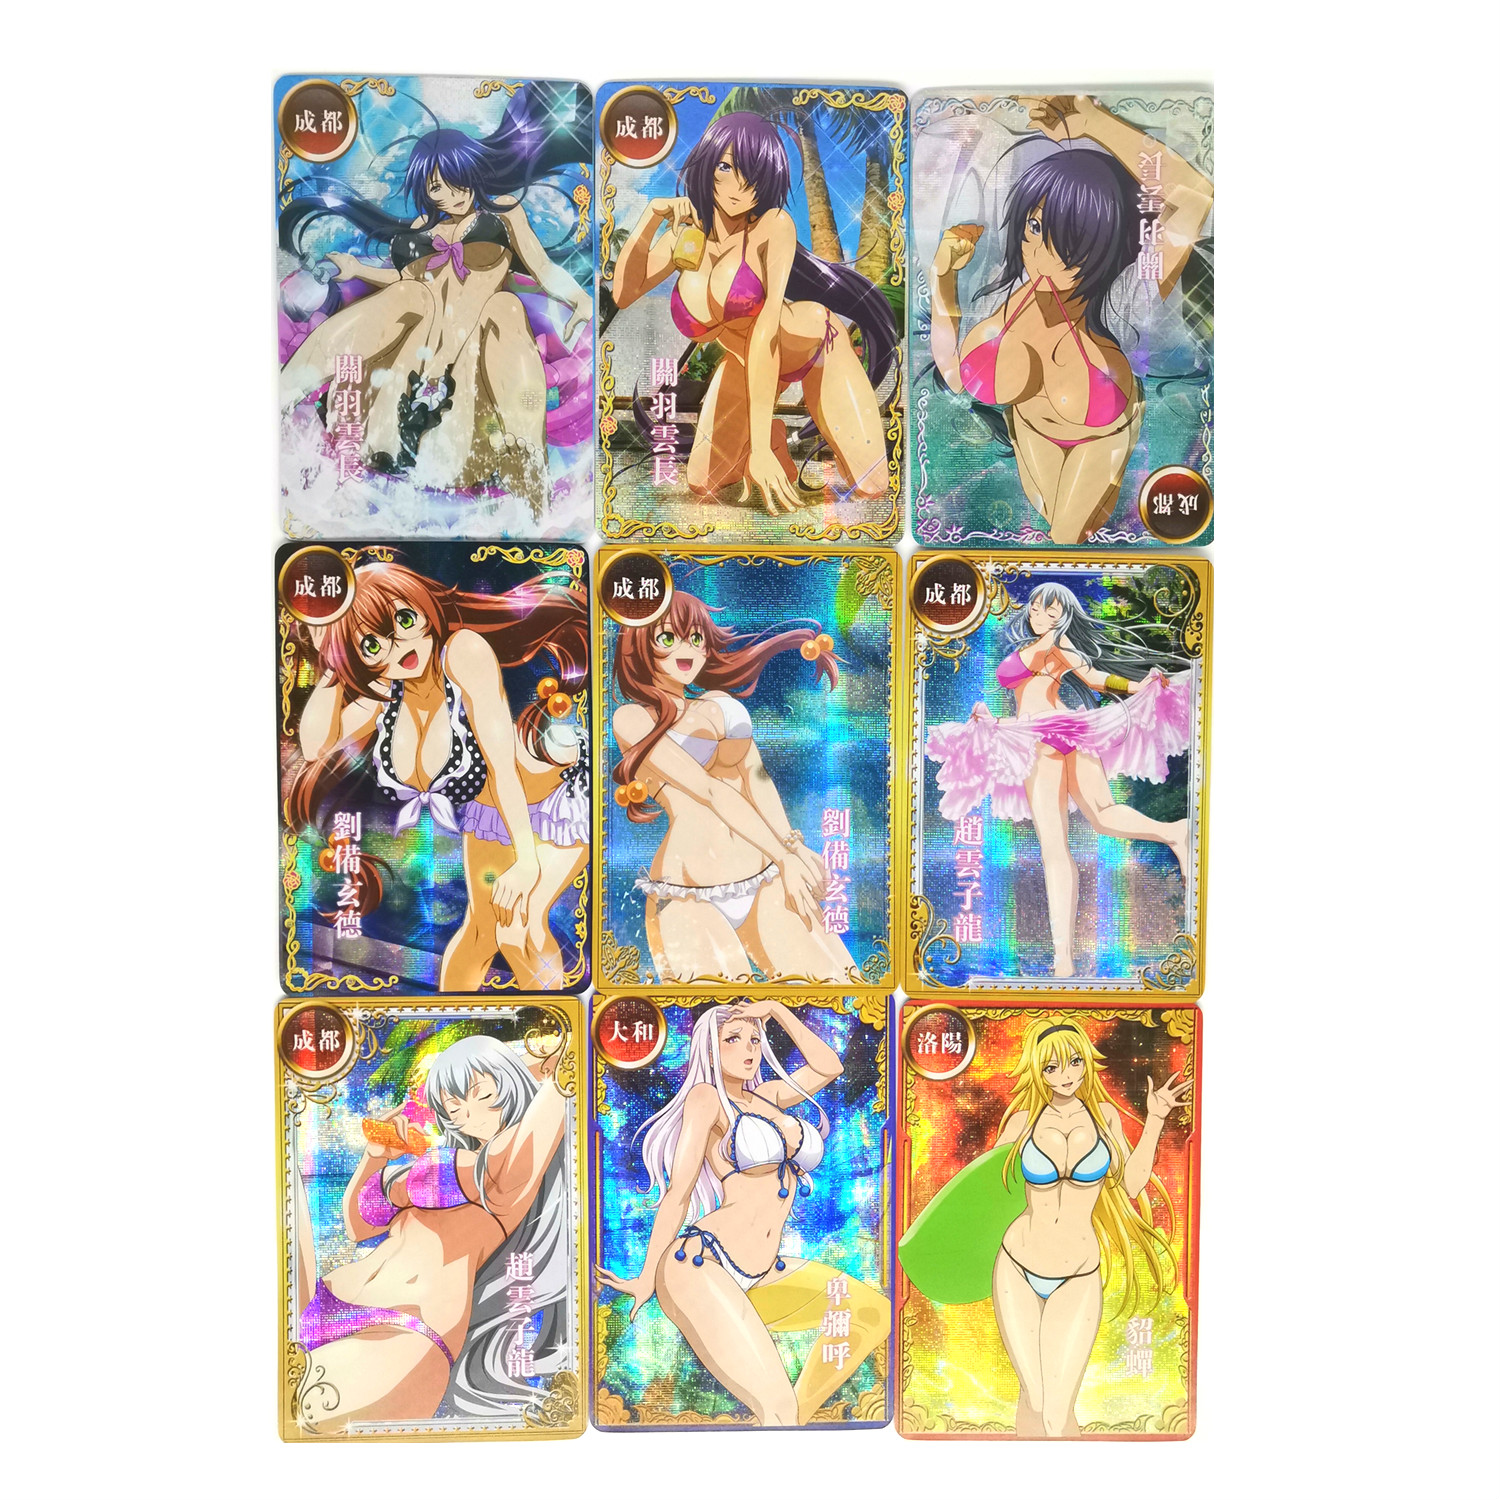 18pcs/set Ikkitousen Toys Hobbies Hobby Collectibles Game Collection Anime Cards